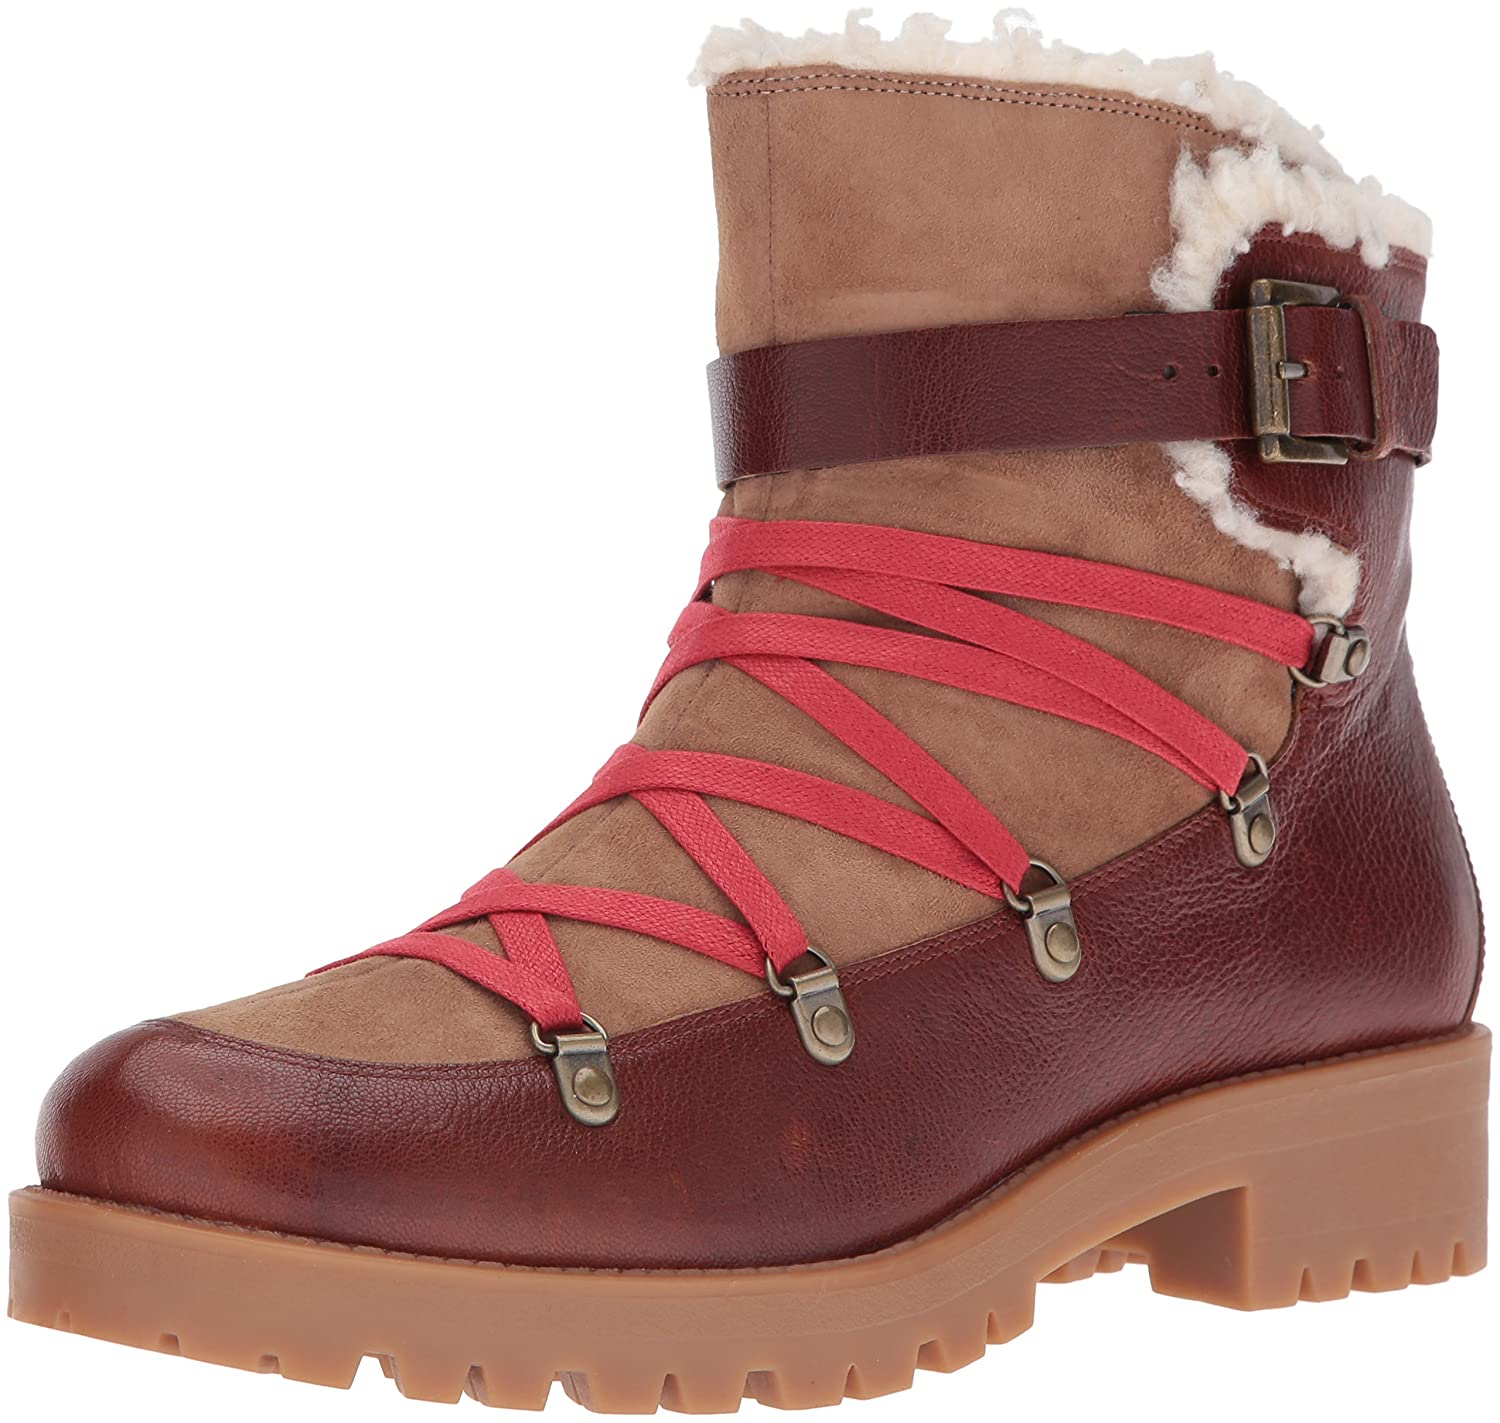 Nine West Women's Orynne Leather Boot B01EXYQ1JC 6 B(M) US|Cognac/Natural